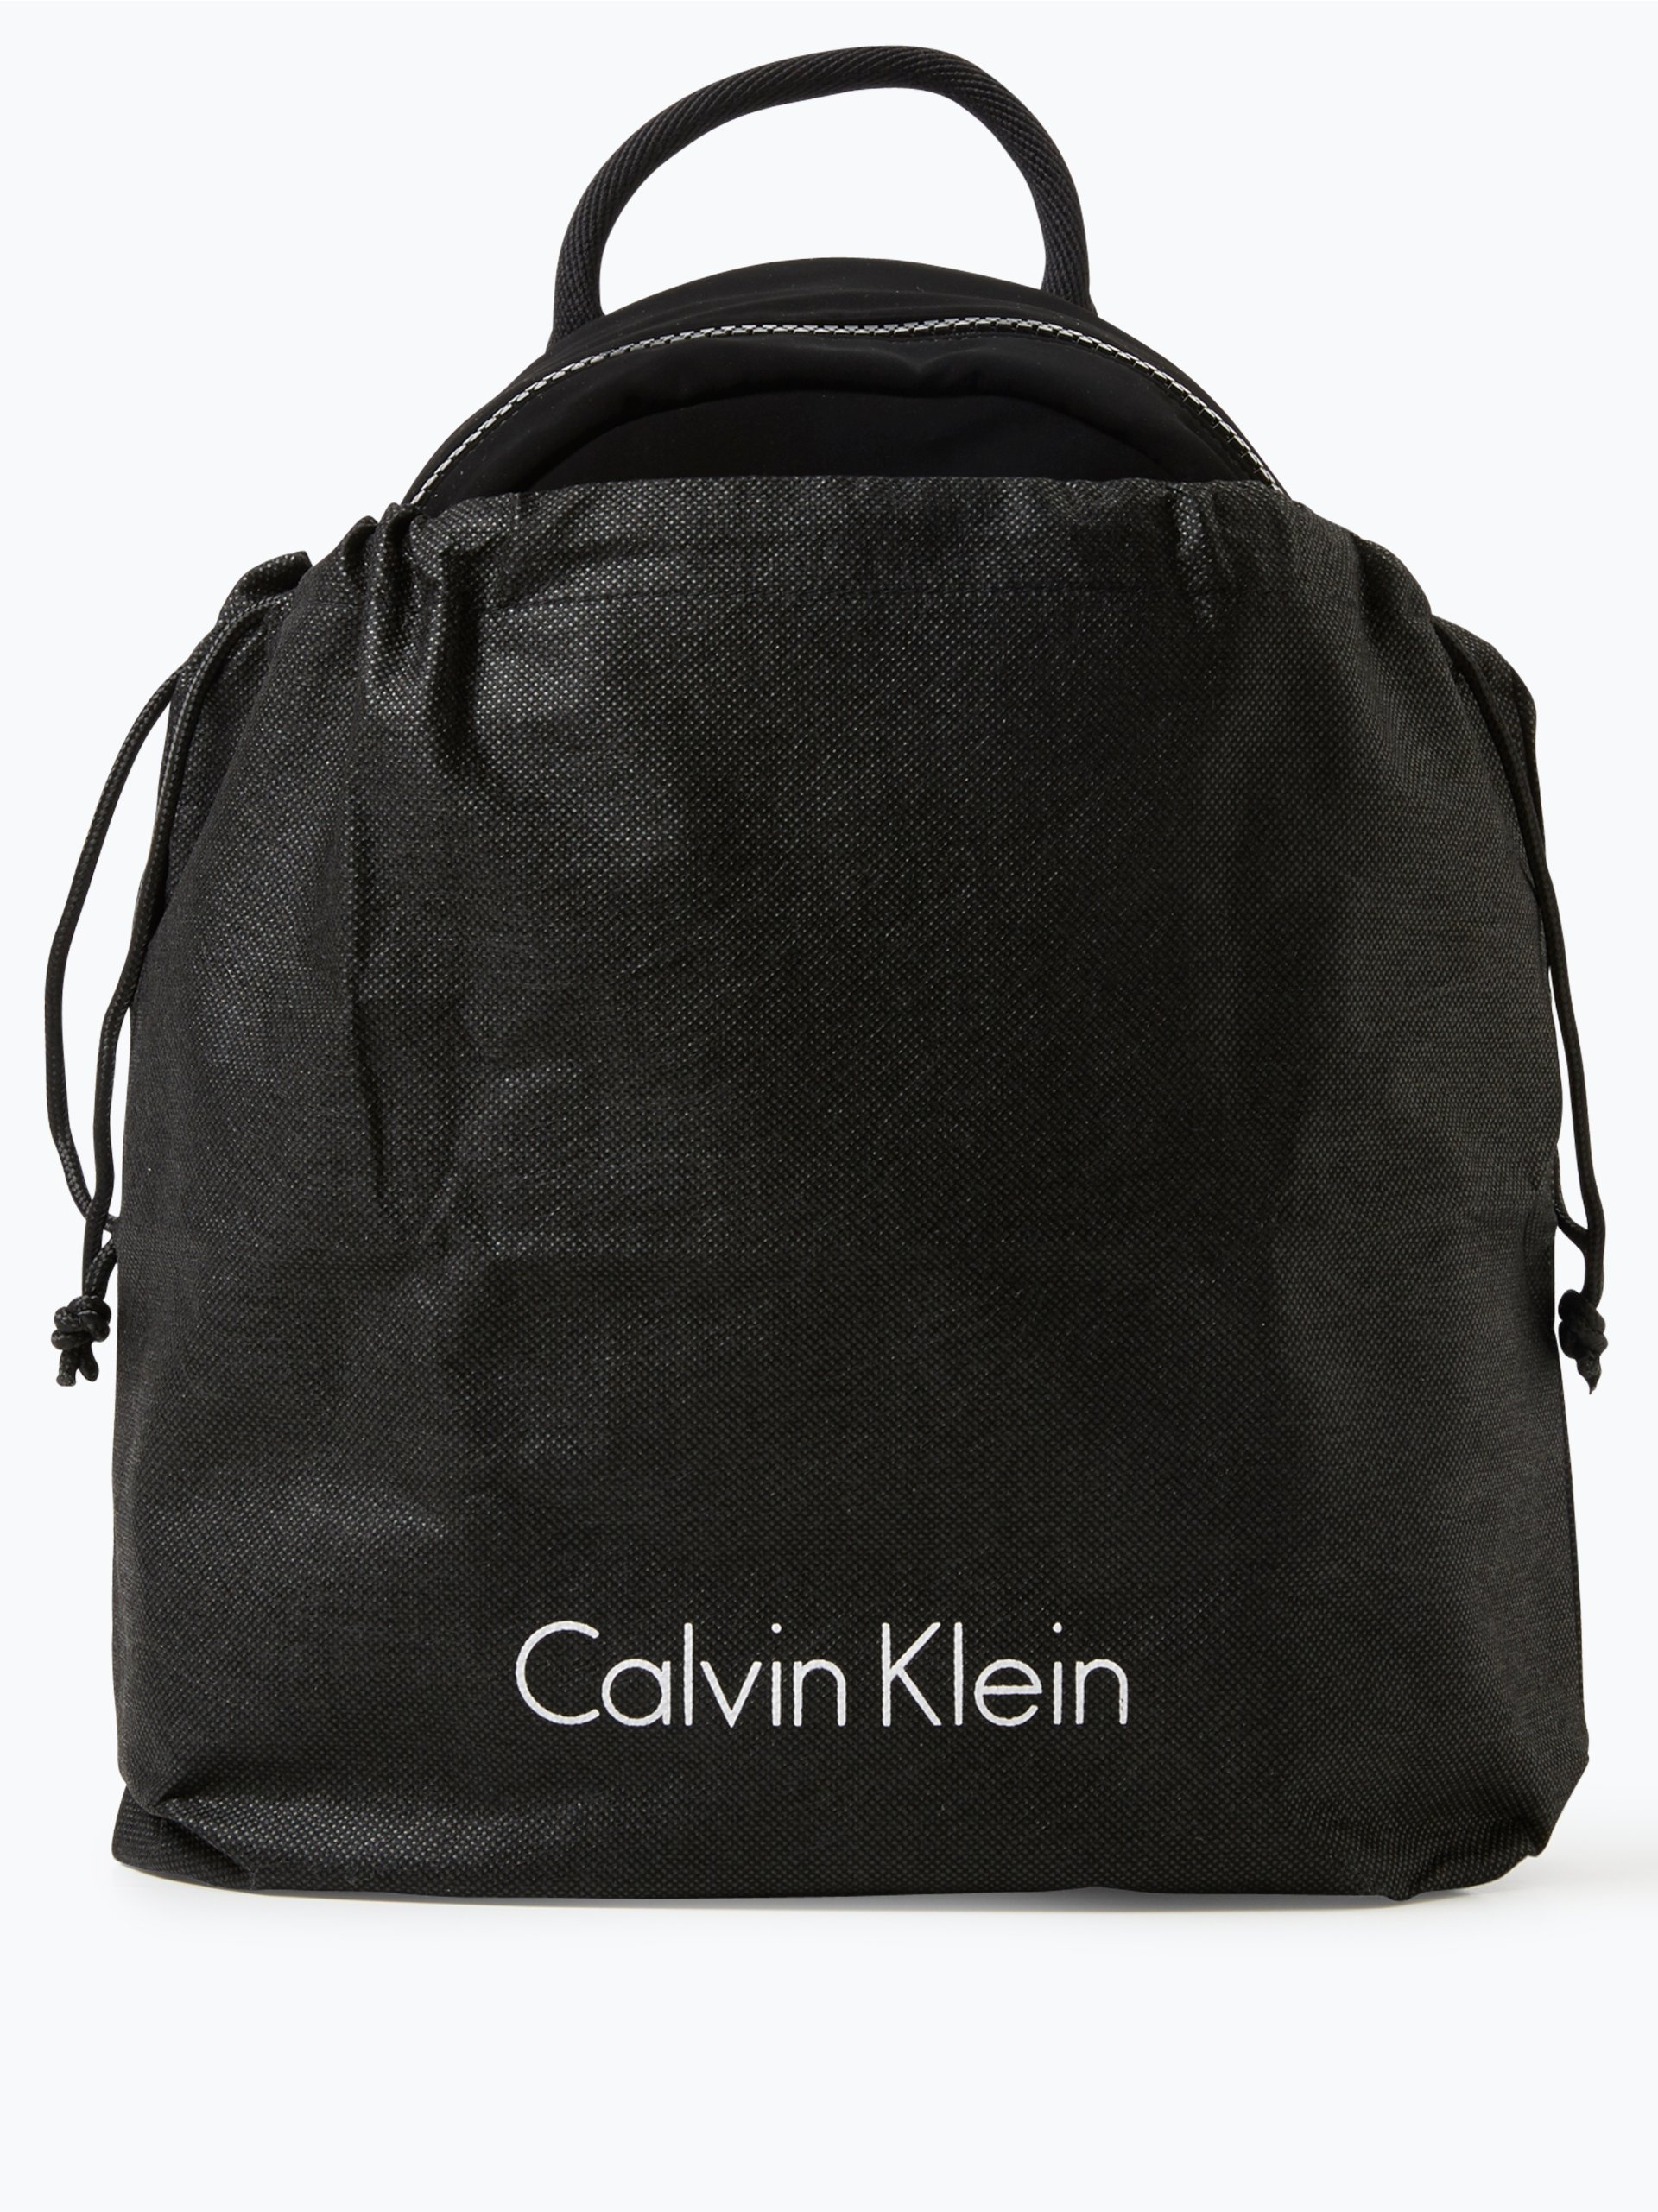 calvin klein damen rucksack susi 3 schwarz uni online kaufen vangraaf com. Black Bedroom Furniture Sets. Home Design Ideas